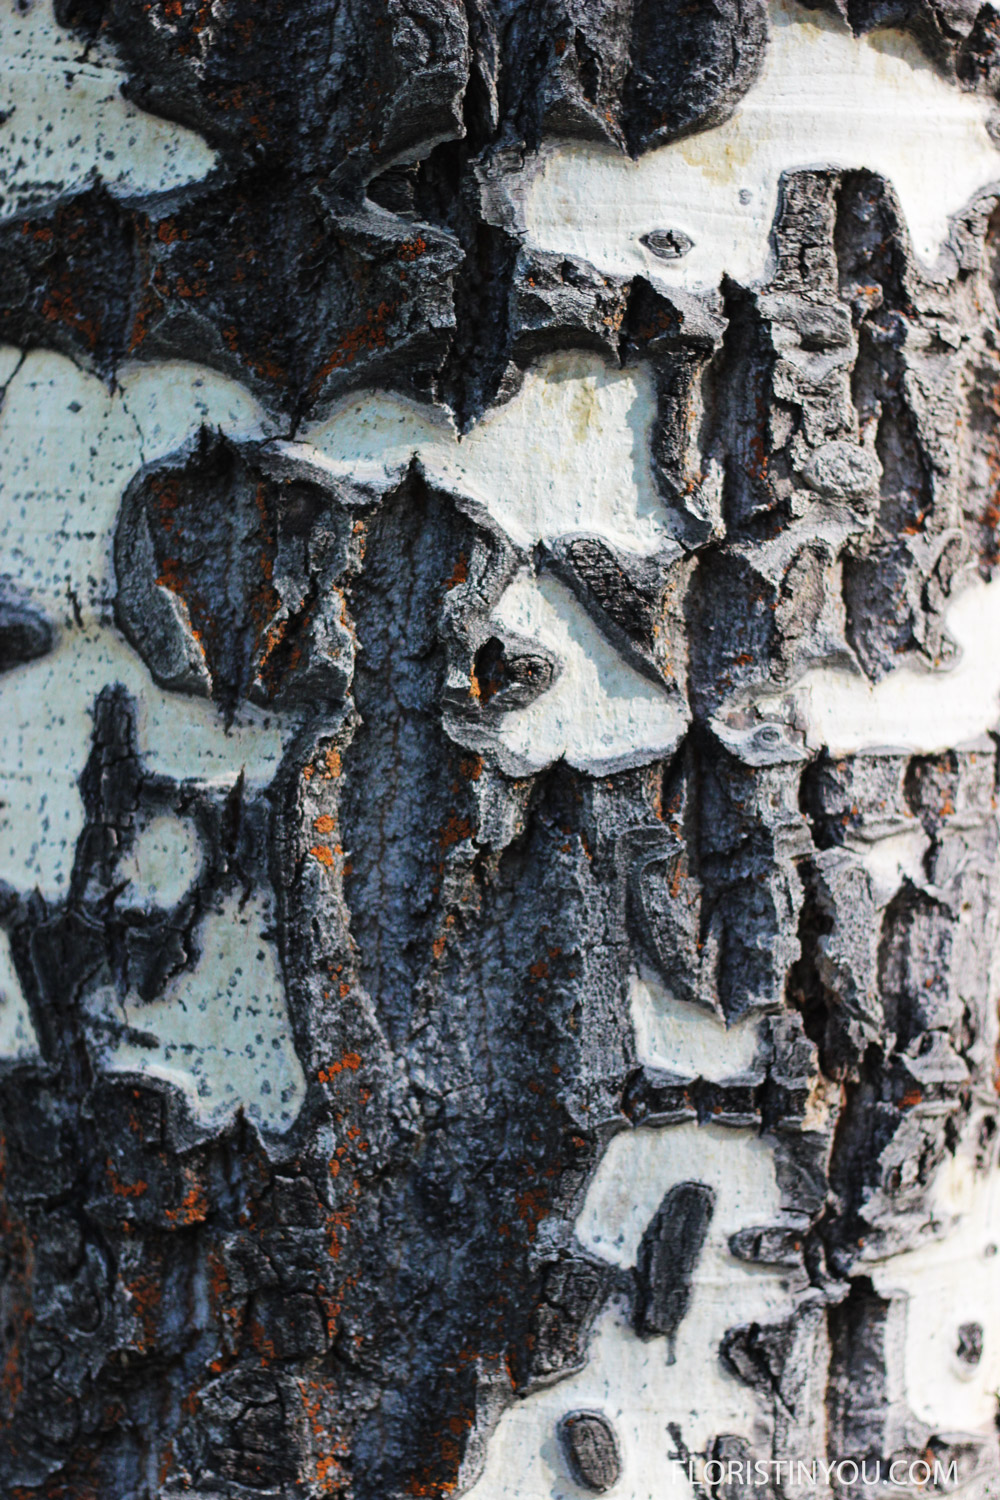 The aspen bark is a great study in black & white  contrasts.